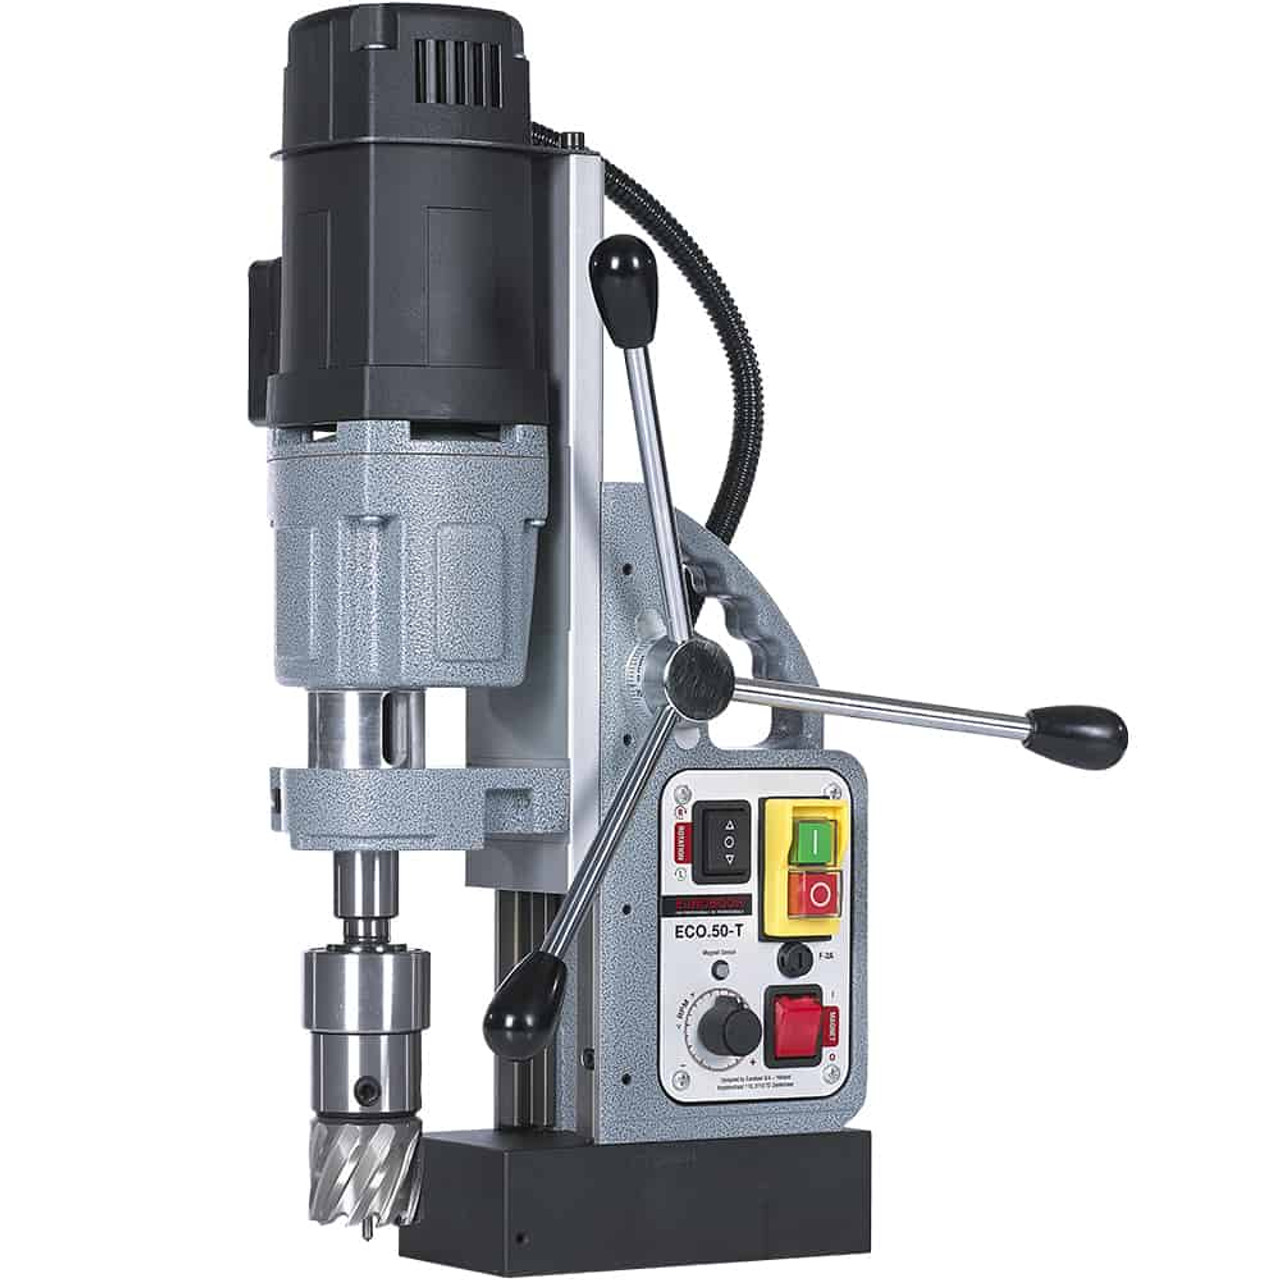 ECO.50-T Magnetic Drill Press